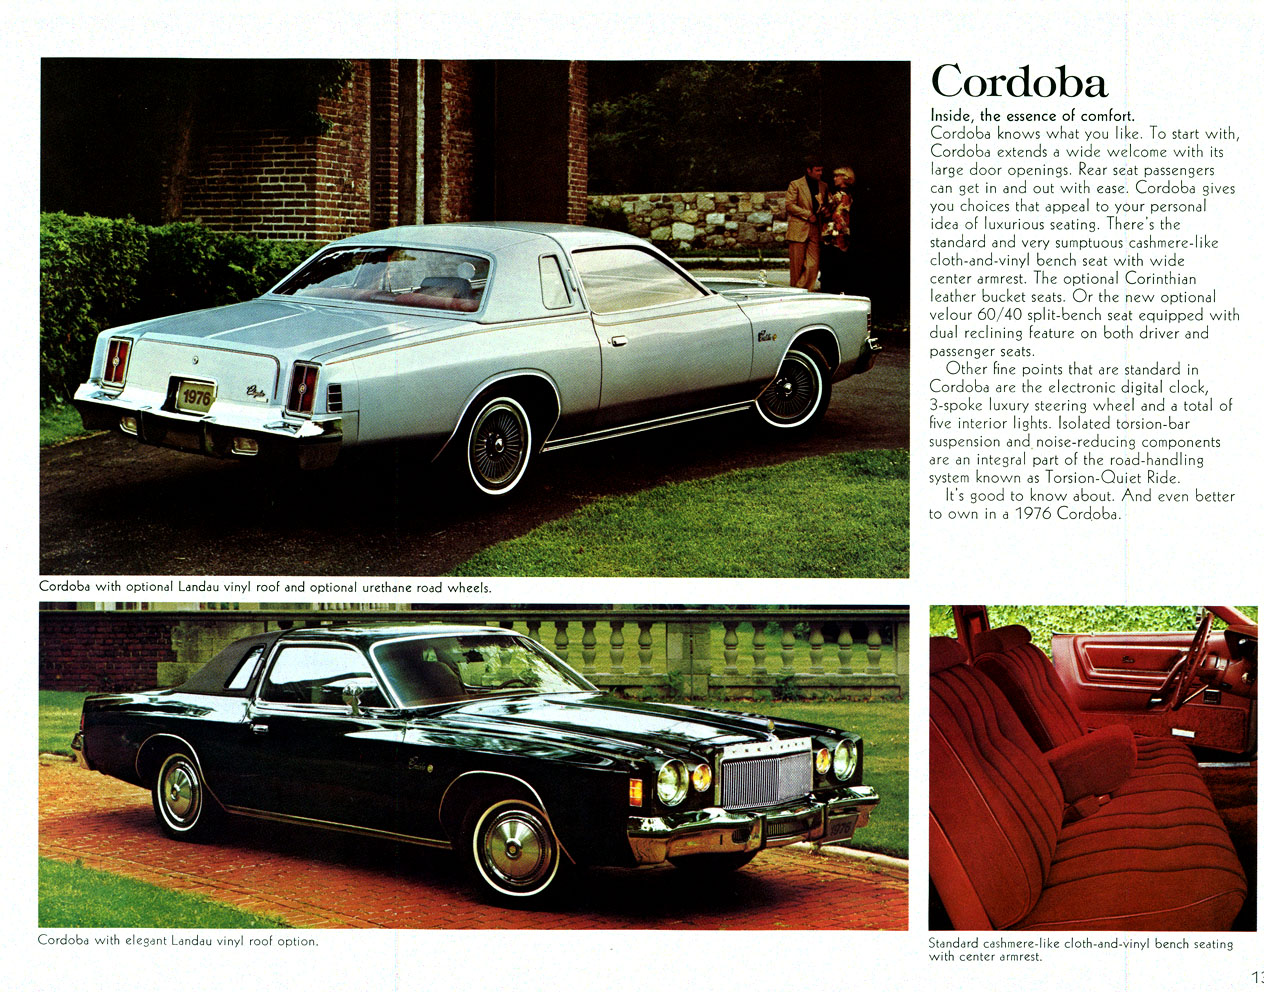 1976 chrysler cordoba brochure spread this shows rear end styling